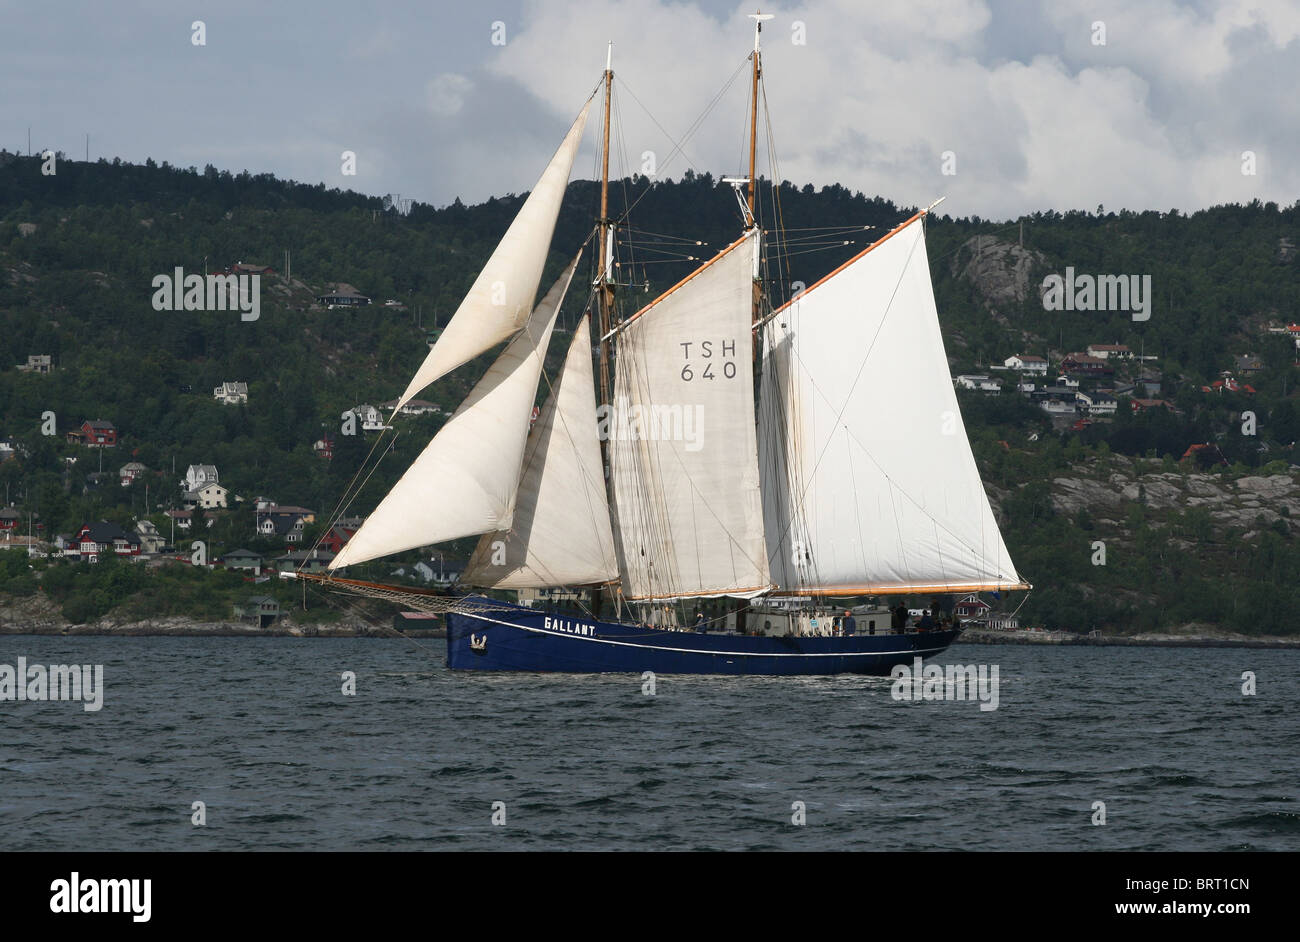 Galant,The Tall Ships Races 2008, Bergen - Stock Image